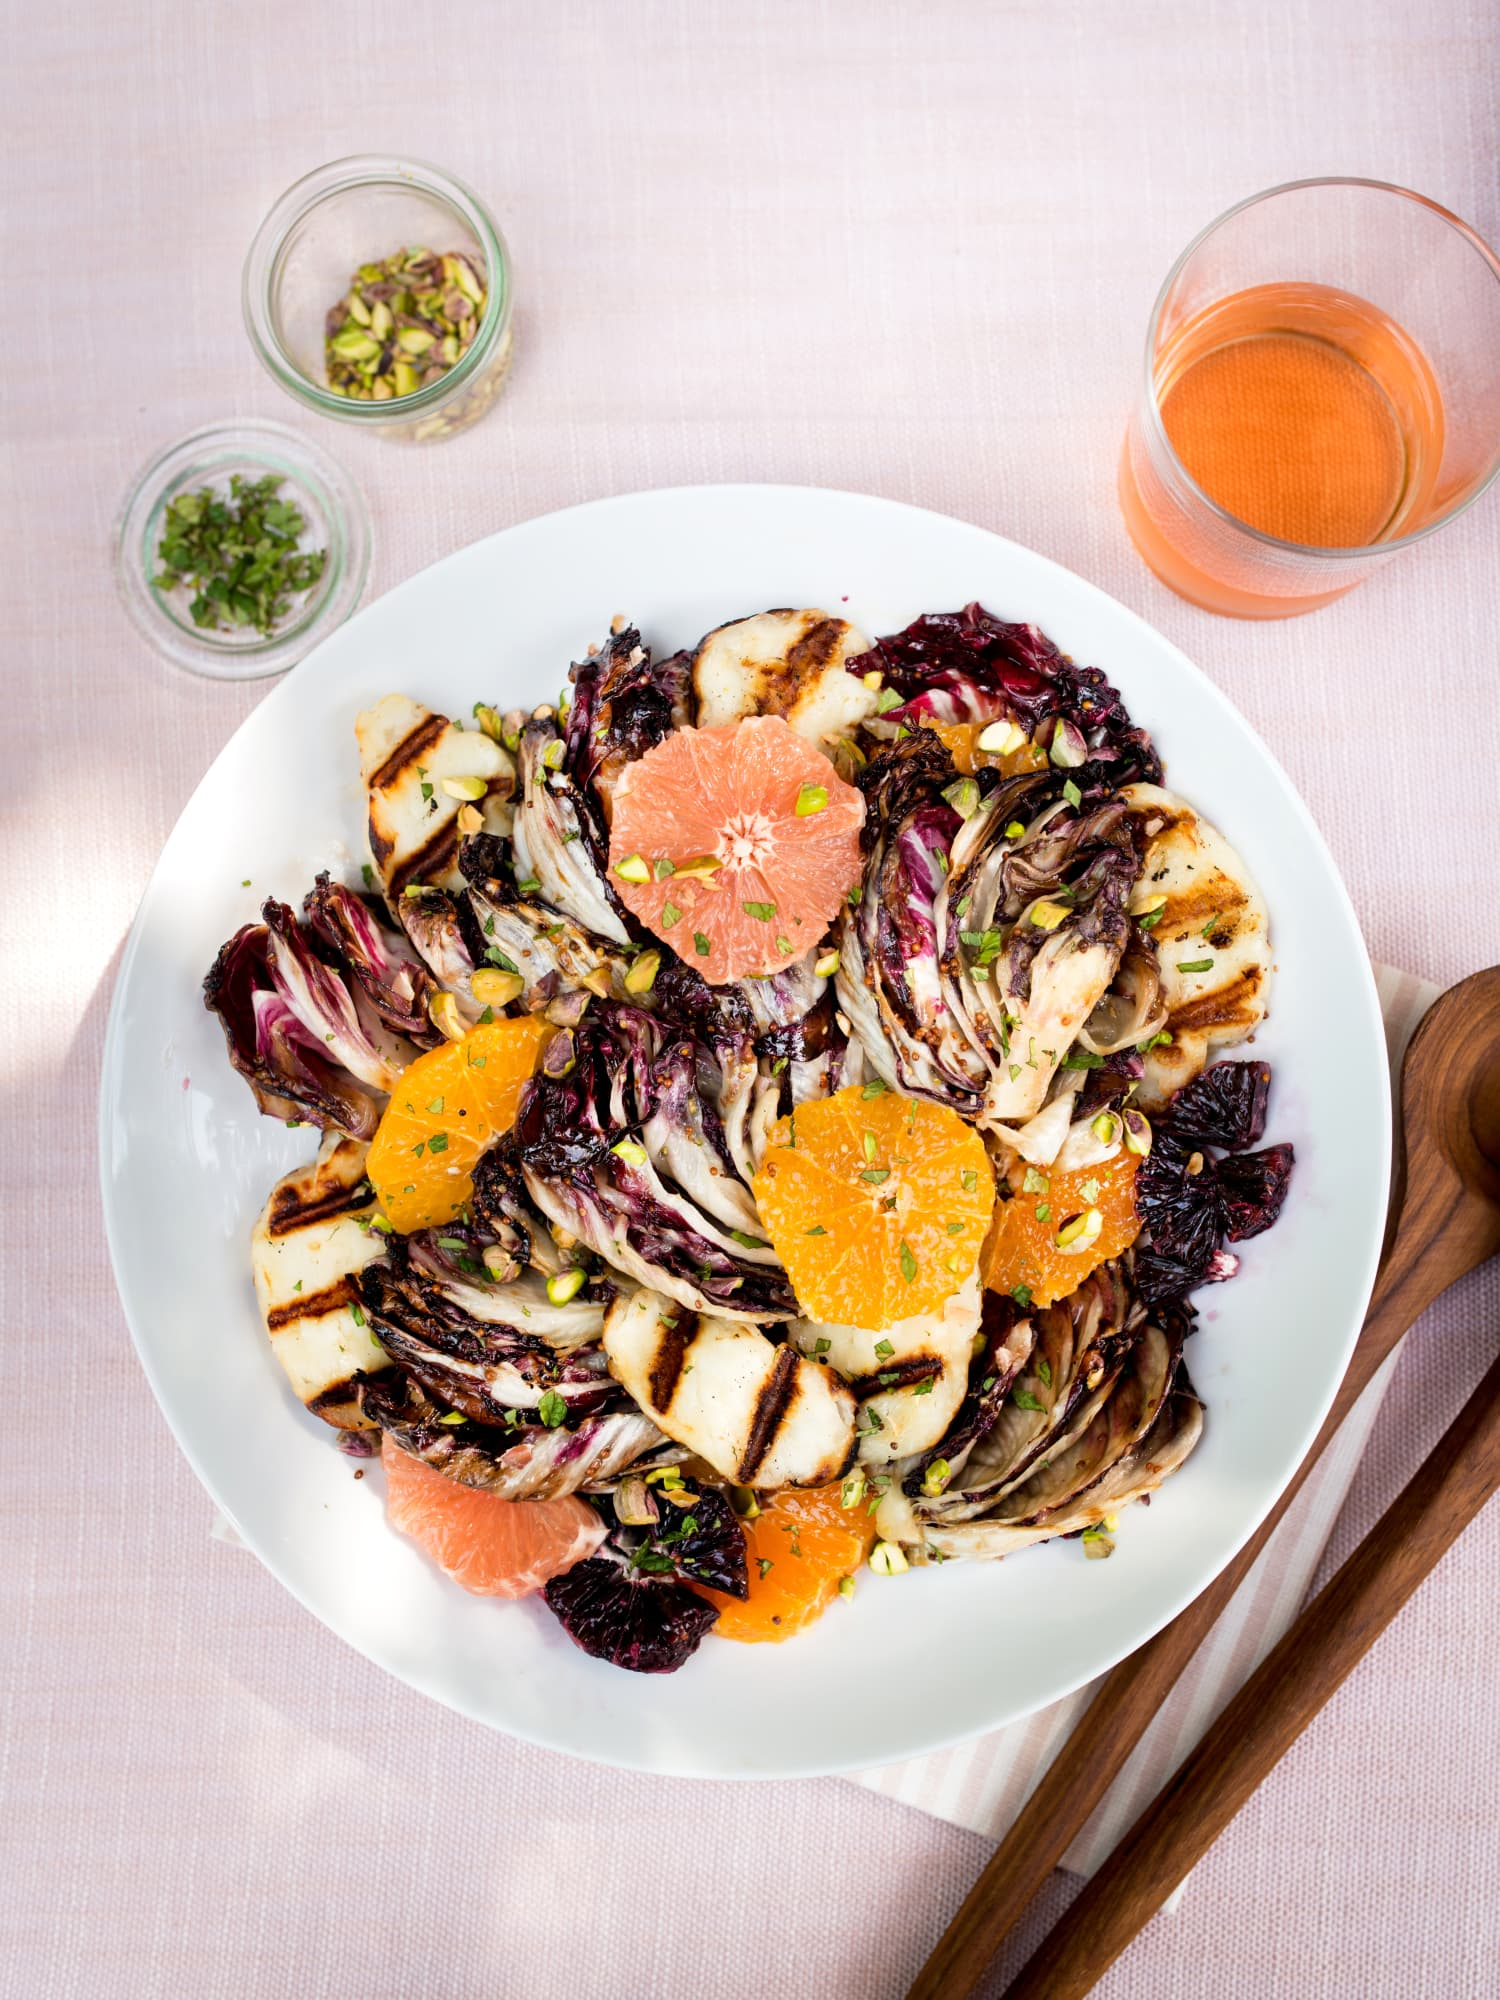 This Halloumi Salad Is the Next Best Thing to Eating the Cheese Straight from the Grill